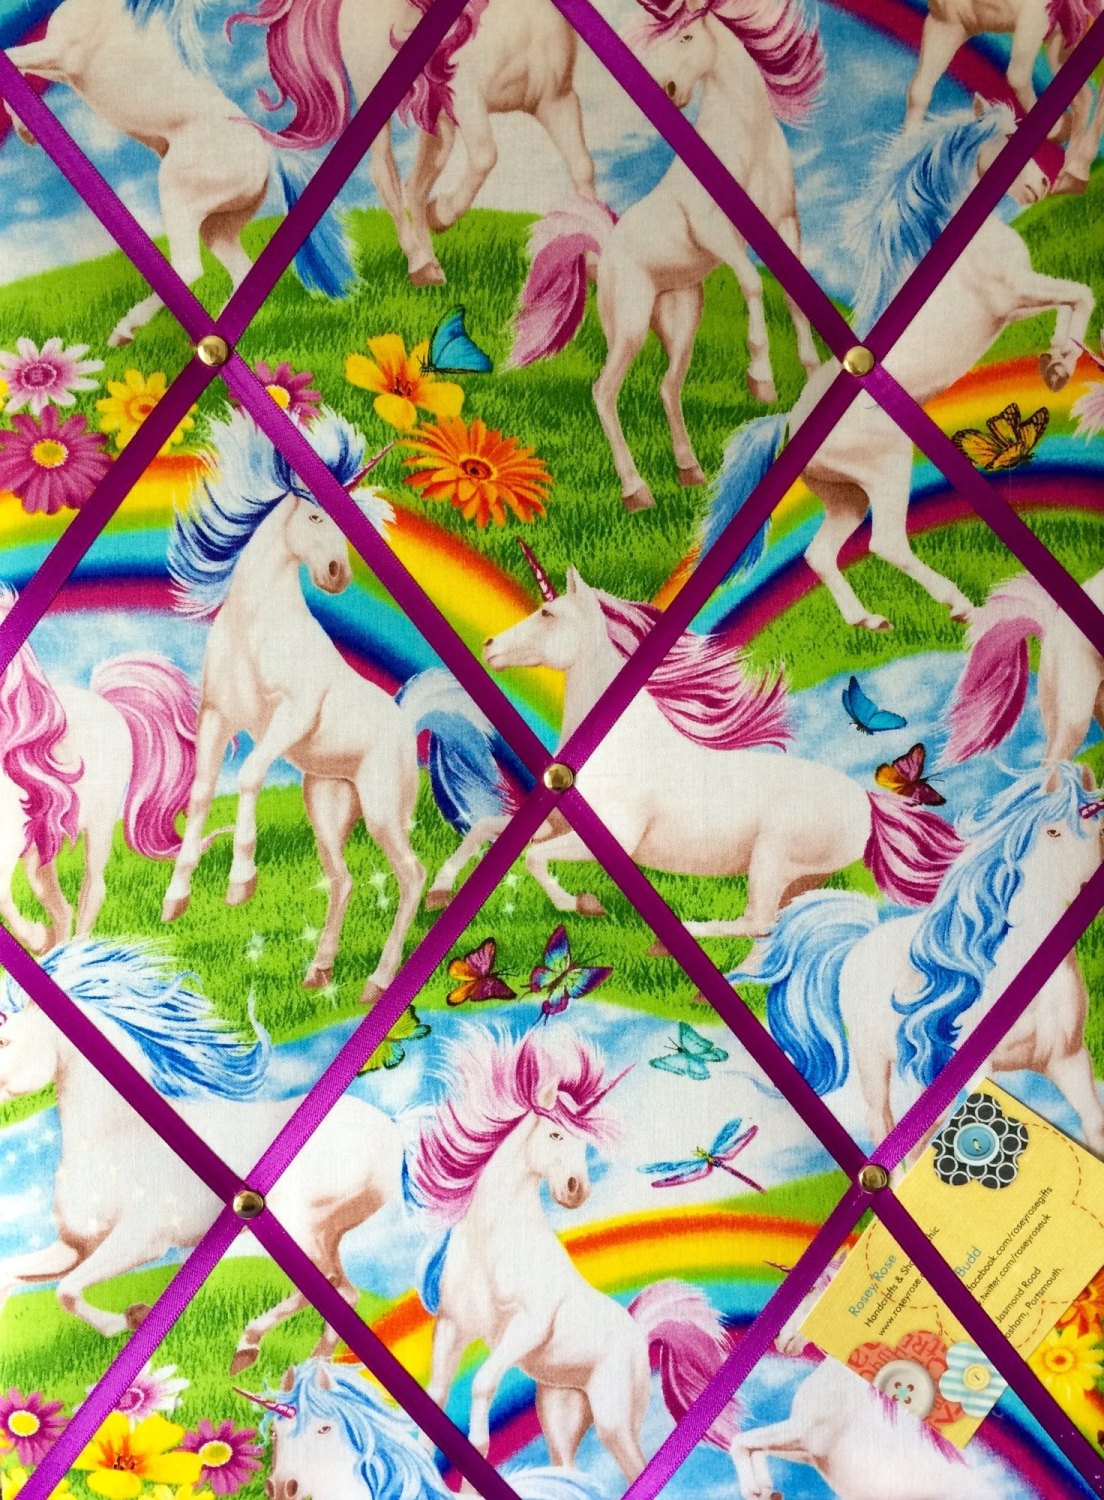 Medium 40x30cm Timeless Treasures Scenic Rainbows & Unicorns Hand Crafted F